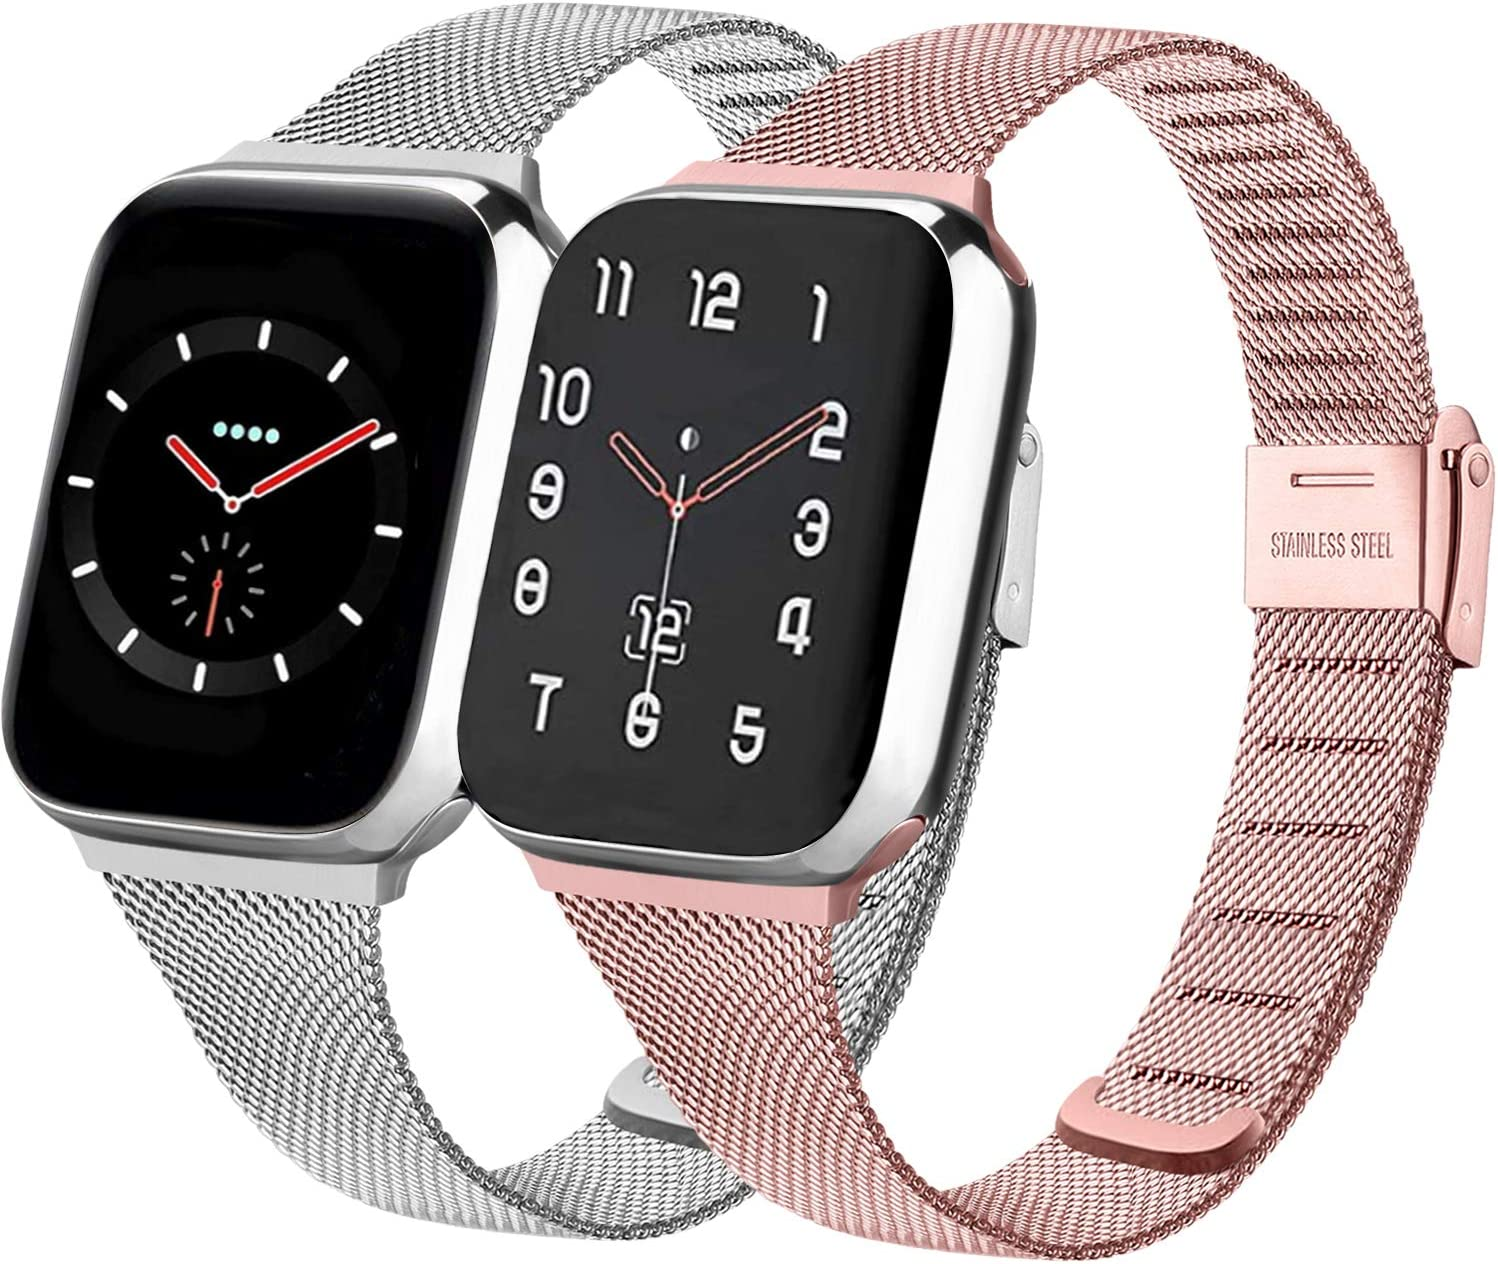 PACK 2 Metal Band Compatible with Apple Watch 38mm 40mm 42mm 44mm,Stainless Steel Mesh Loop with Adjustable Magnetic Closure Bands Compatible for iWatch Series 5/4/3/2/1(rose pink+silver,42mm/44mm)